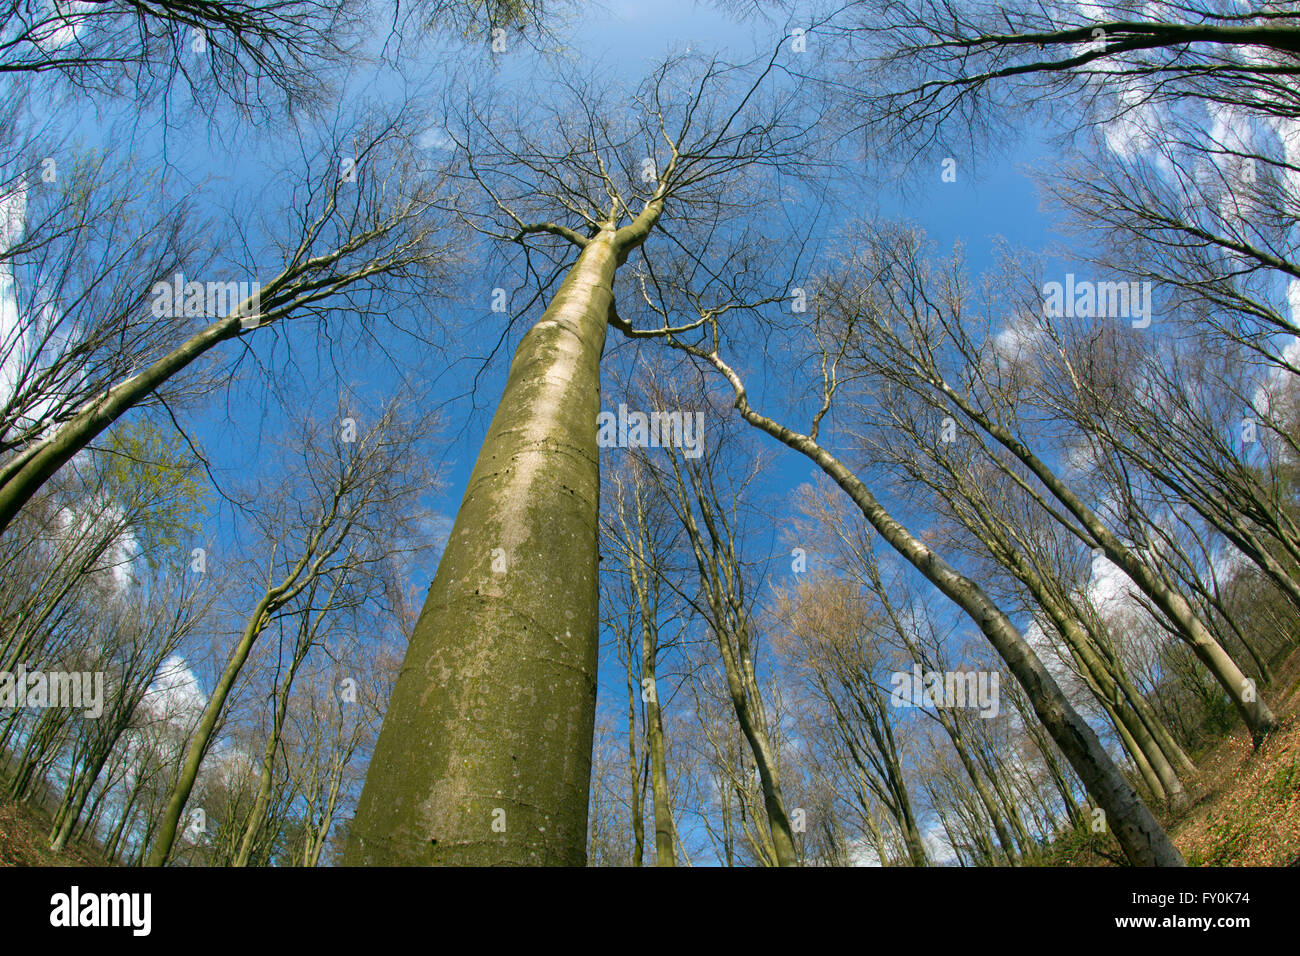 Beech Fagus sylvatica with wide angle view looking upwards - Stock Image